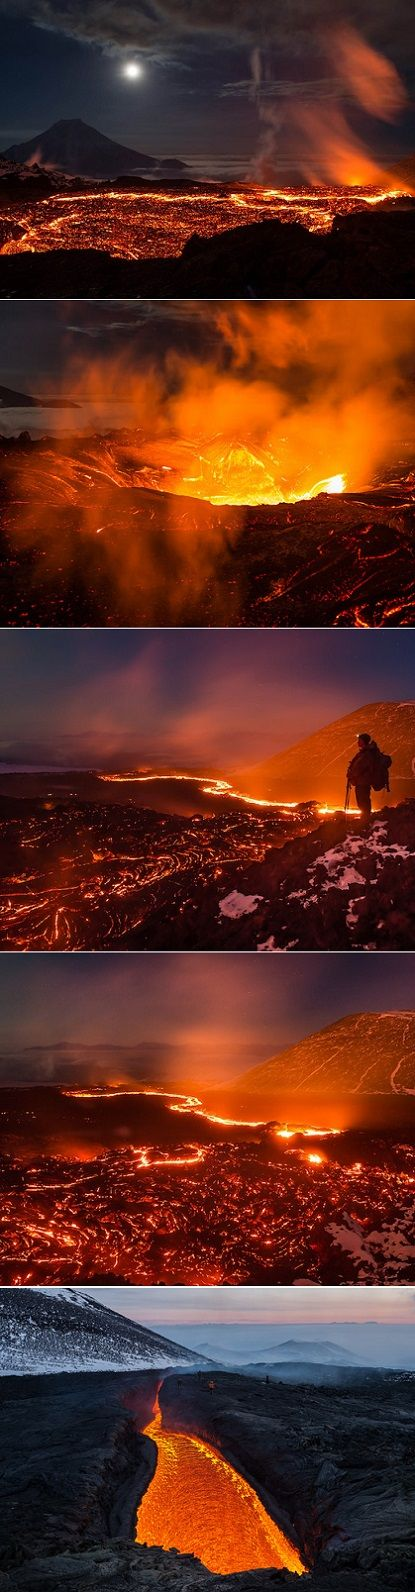 Erupting Volcano Tolbachik on the Kamchatka Peninsula in Russia